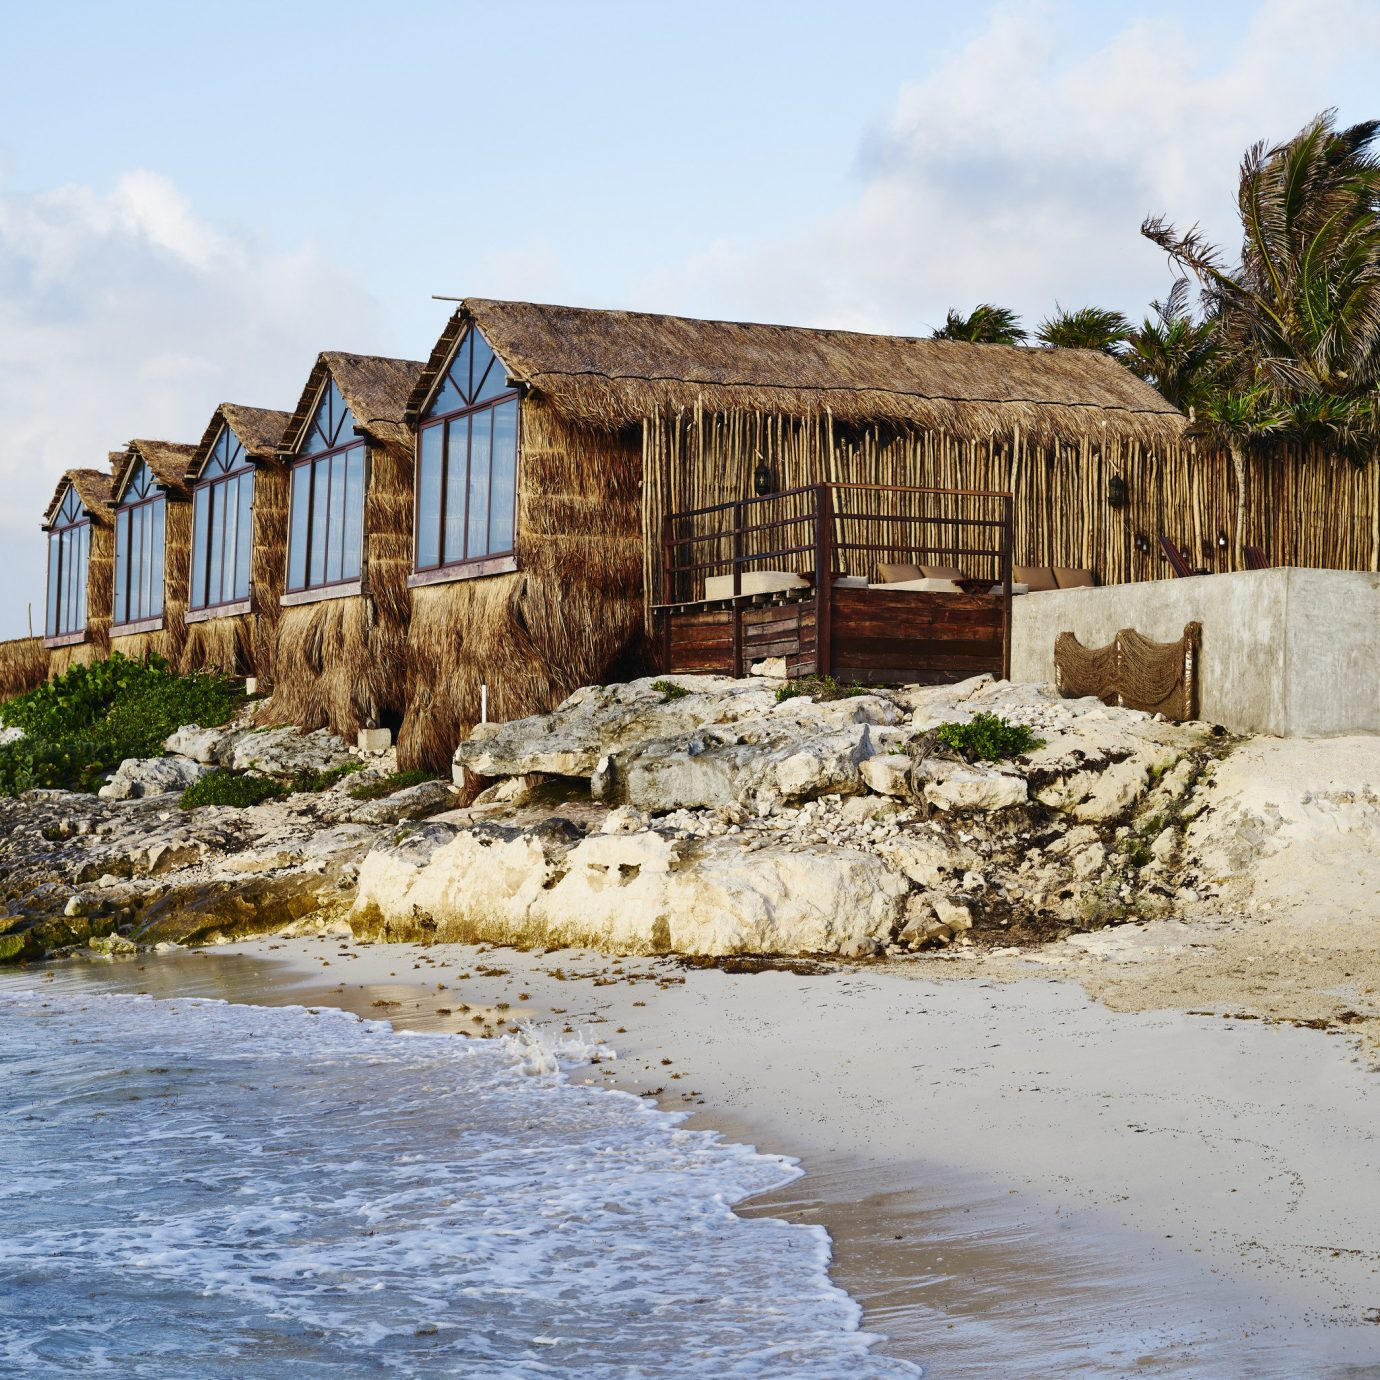 Boutique Hotels Hotels Mexico Tulum sky outdoor body of water house Coast water shore Sea wood Nature real estate cottage Ocean old shack tree rock stone